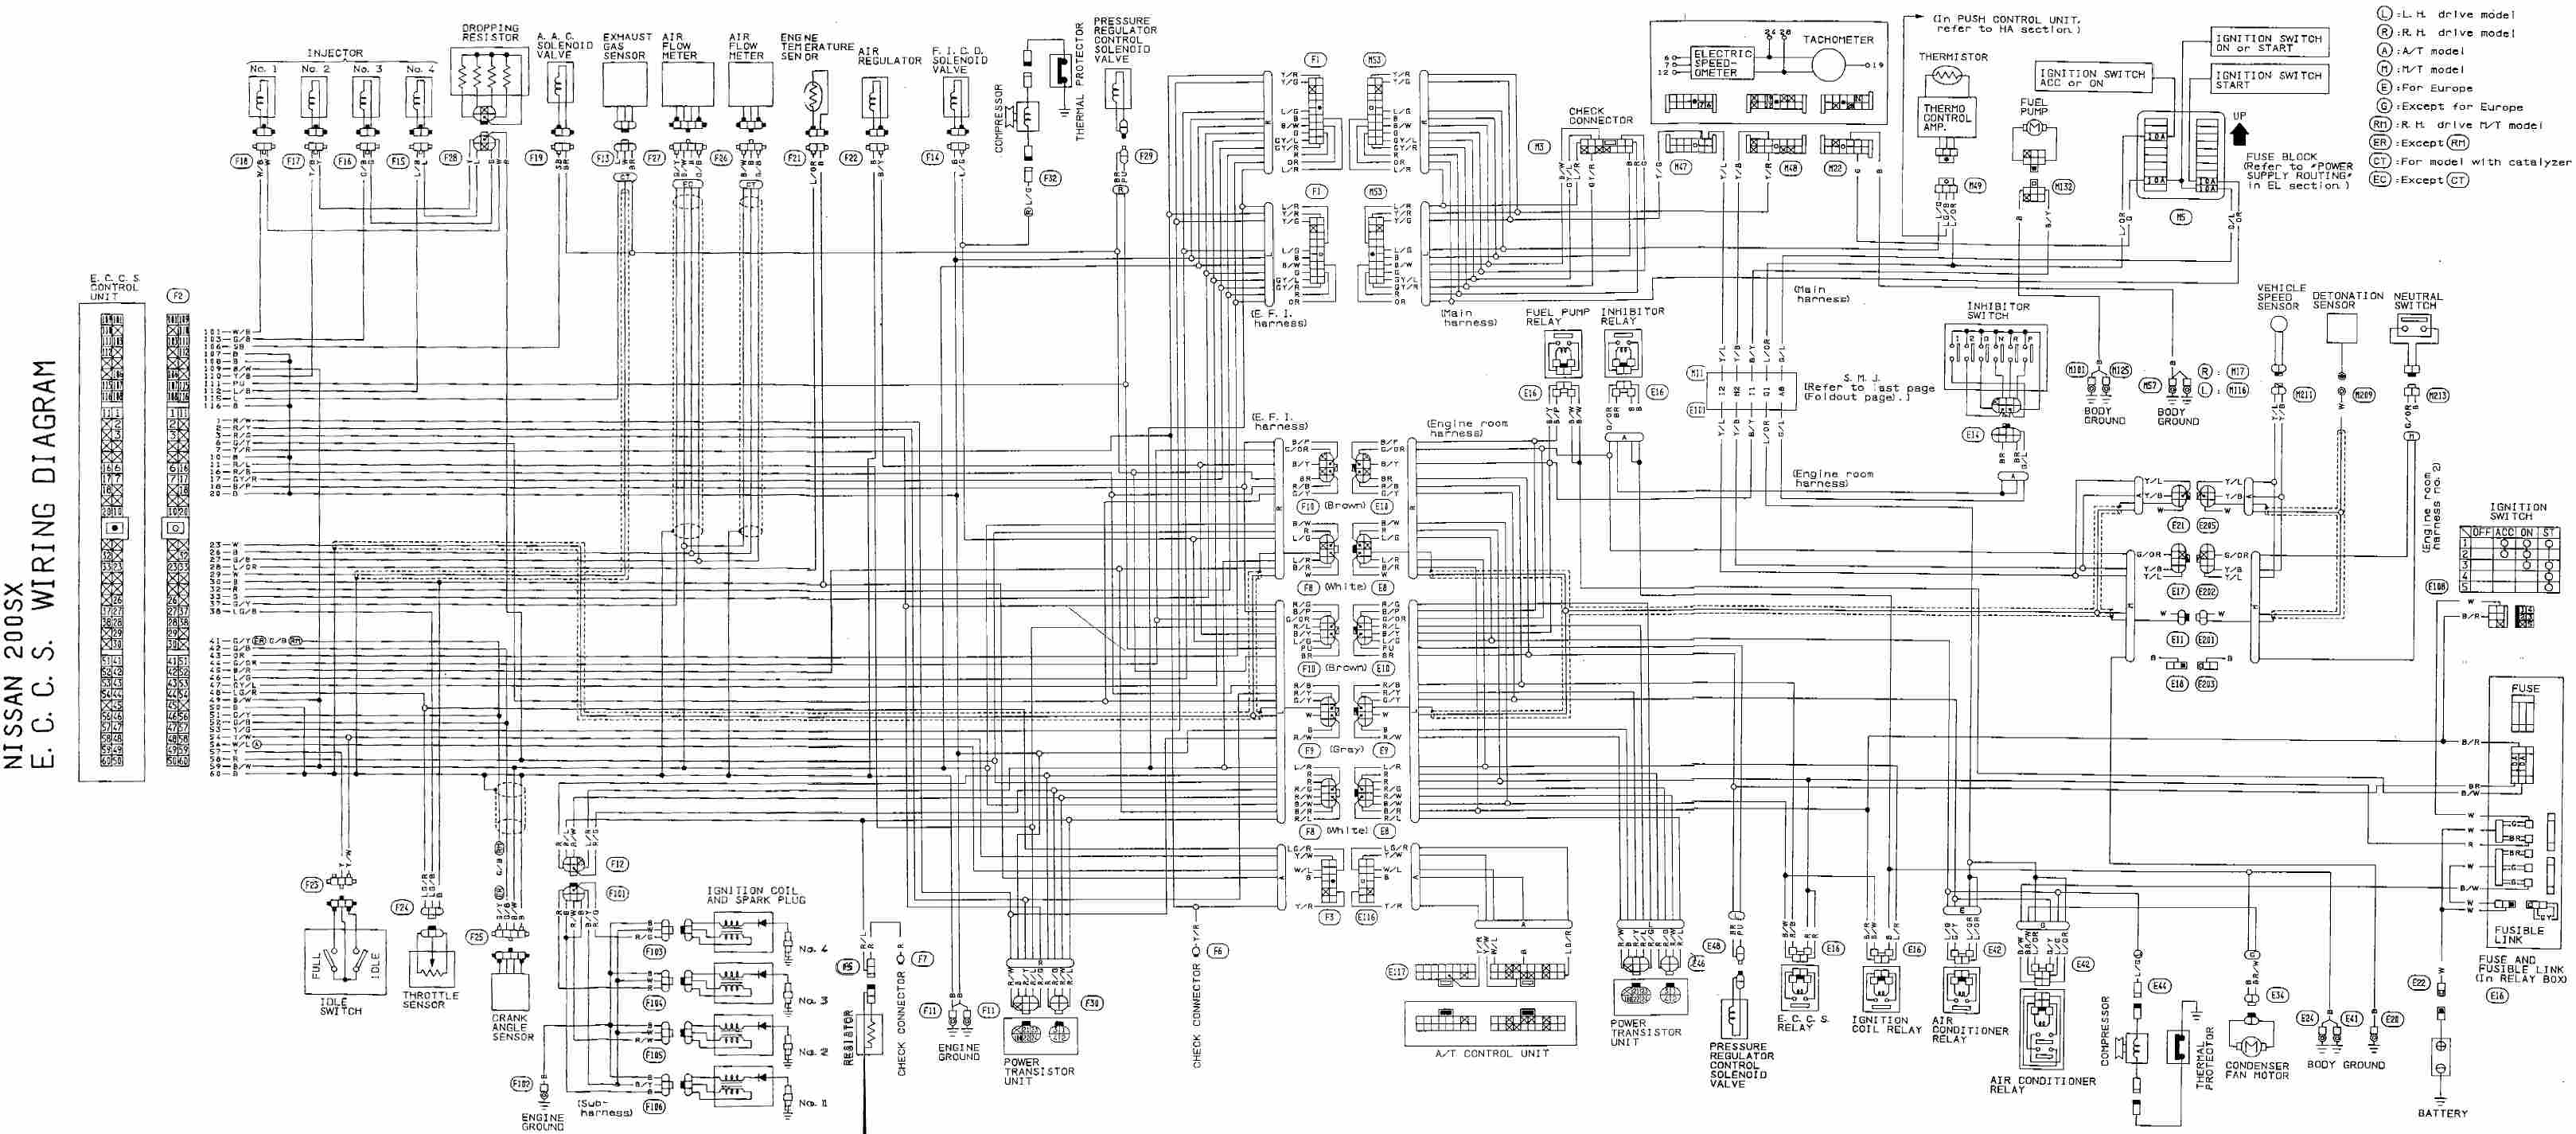 complete eccs wiring diagram of nissan 200x?t\=1508500919 300zx wiring diagram 300zx turbo fuel line diagram \u2022 wiring 1990 nissan pathfinder radio wire diagram at reclaimingppi.co